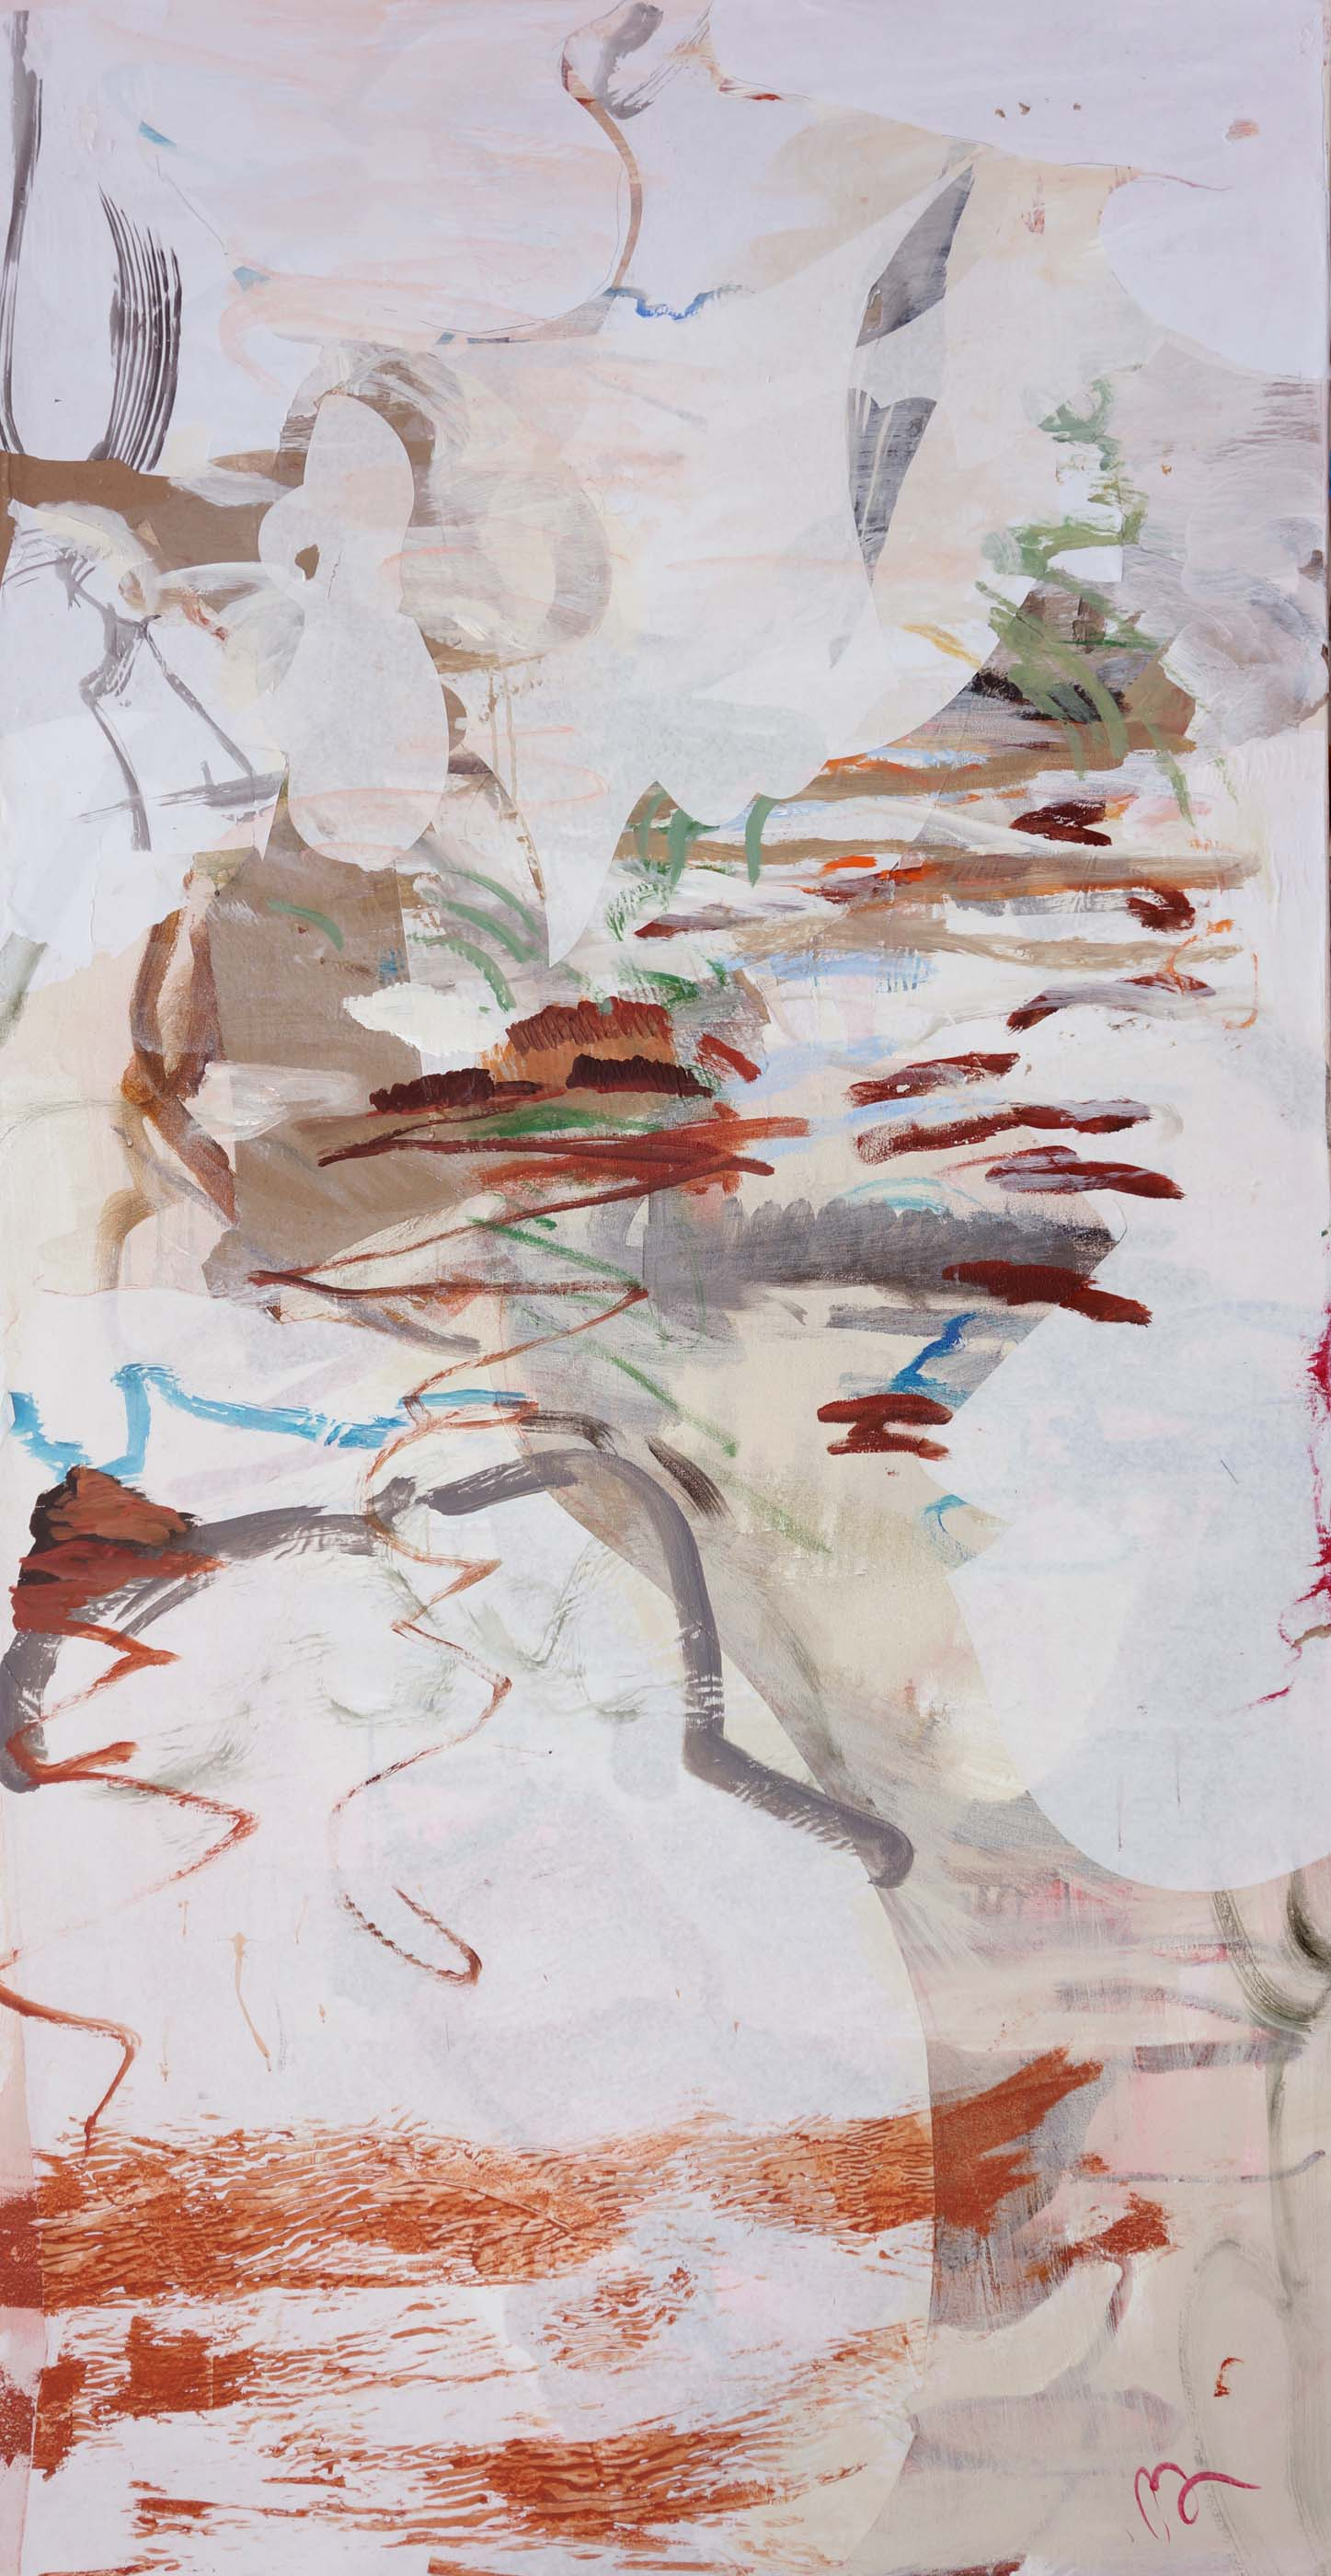 pink creek   72x38  jan. 26 - painting now complete  acrylic & collaged paper on canvas